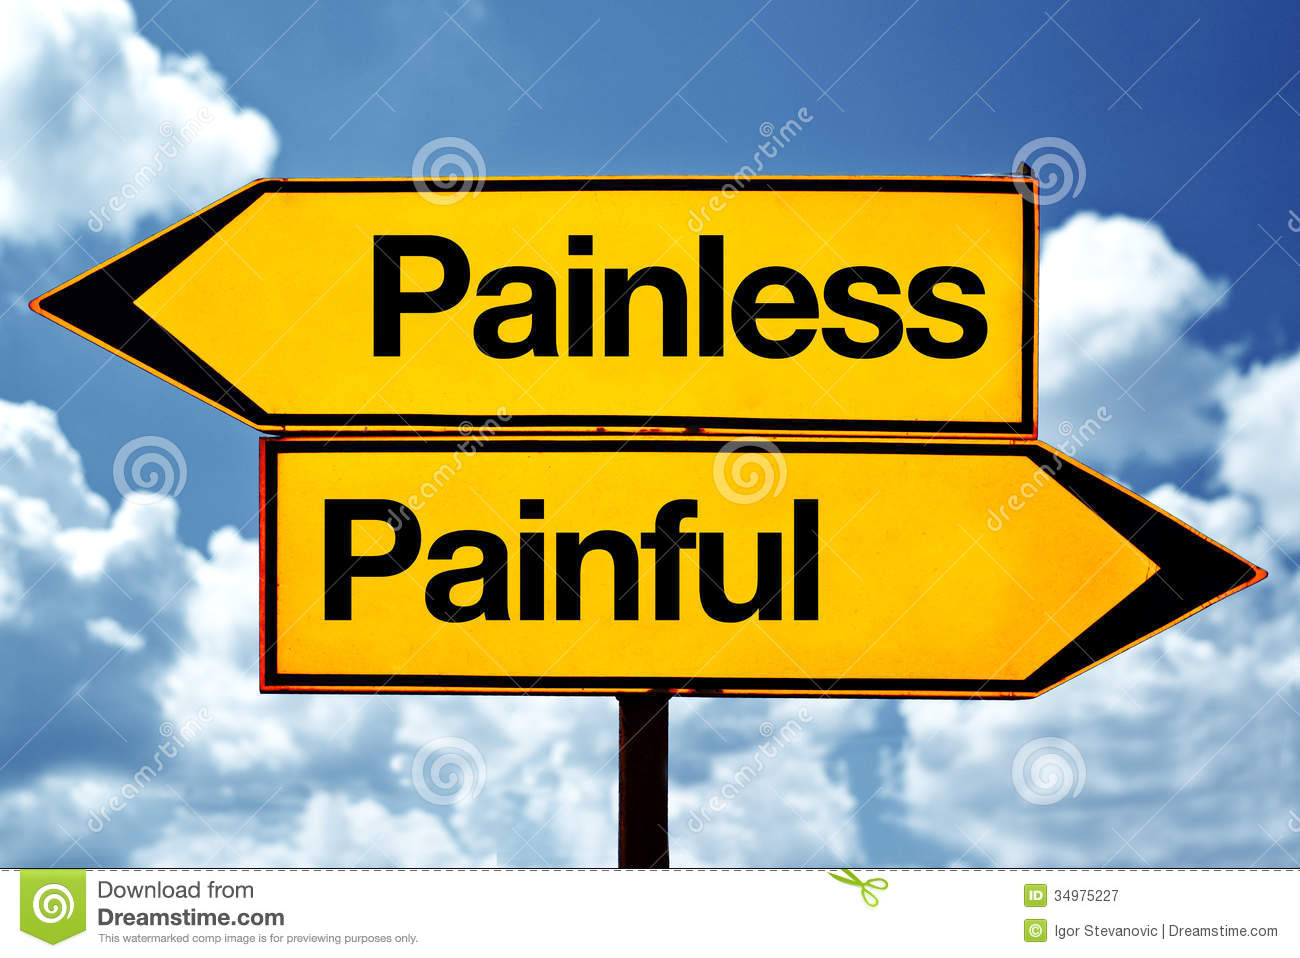 Painless or painful opposite signs. Two opposite road signs against ...